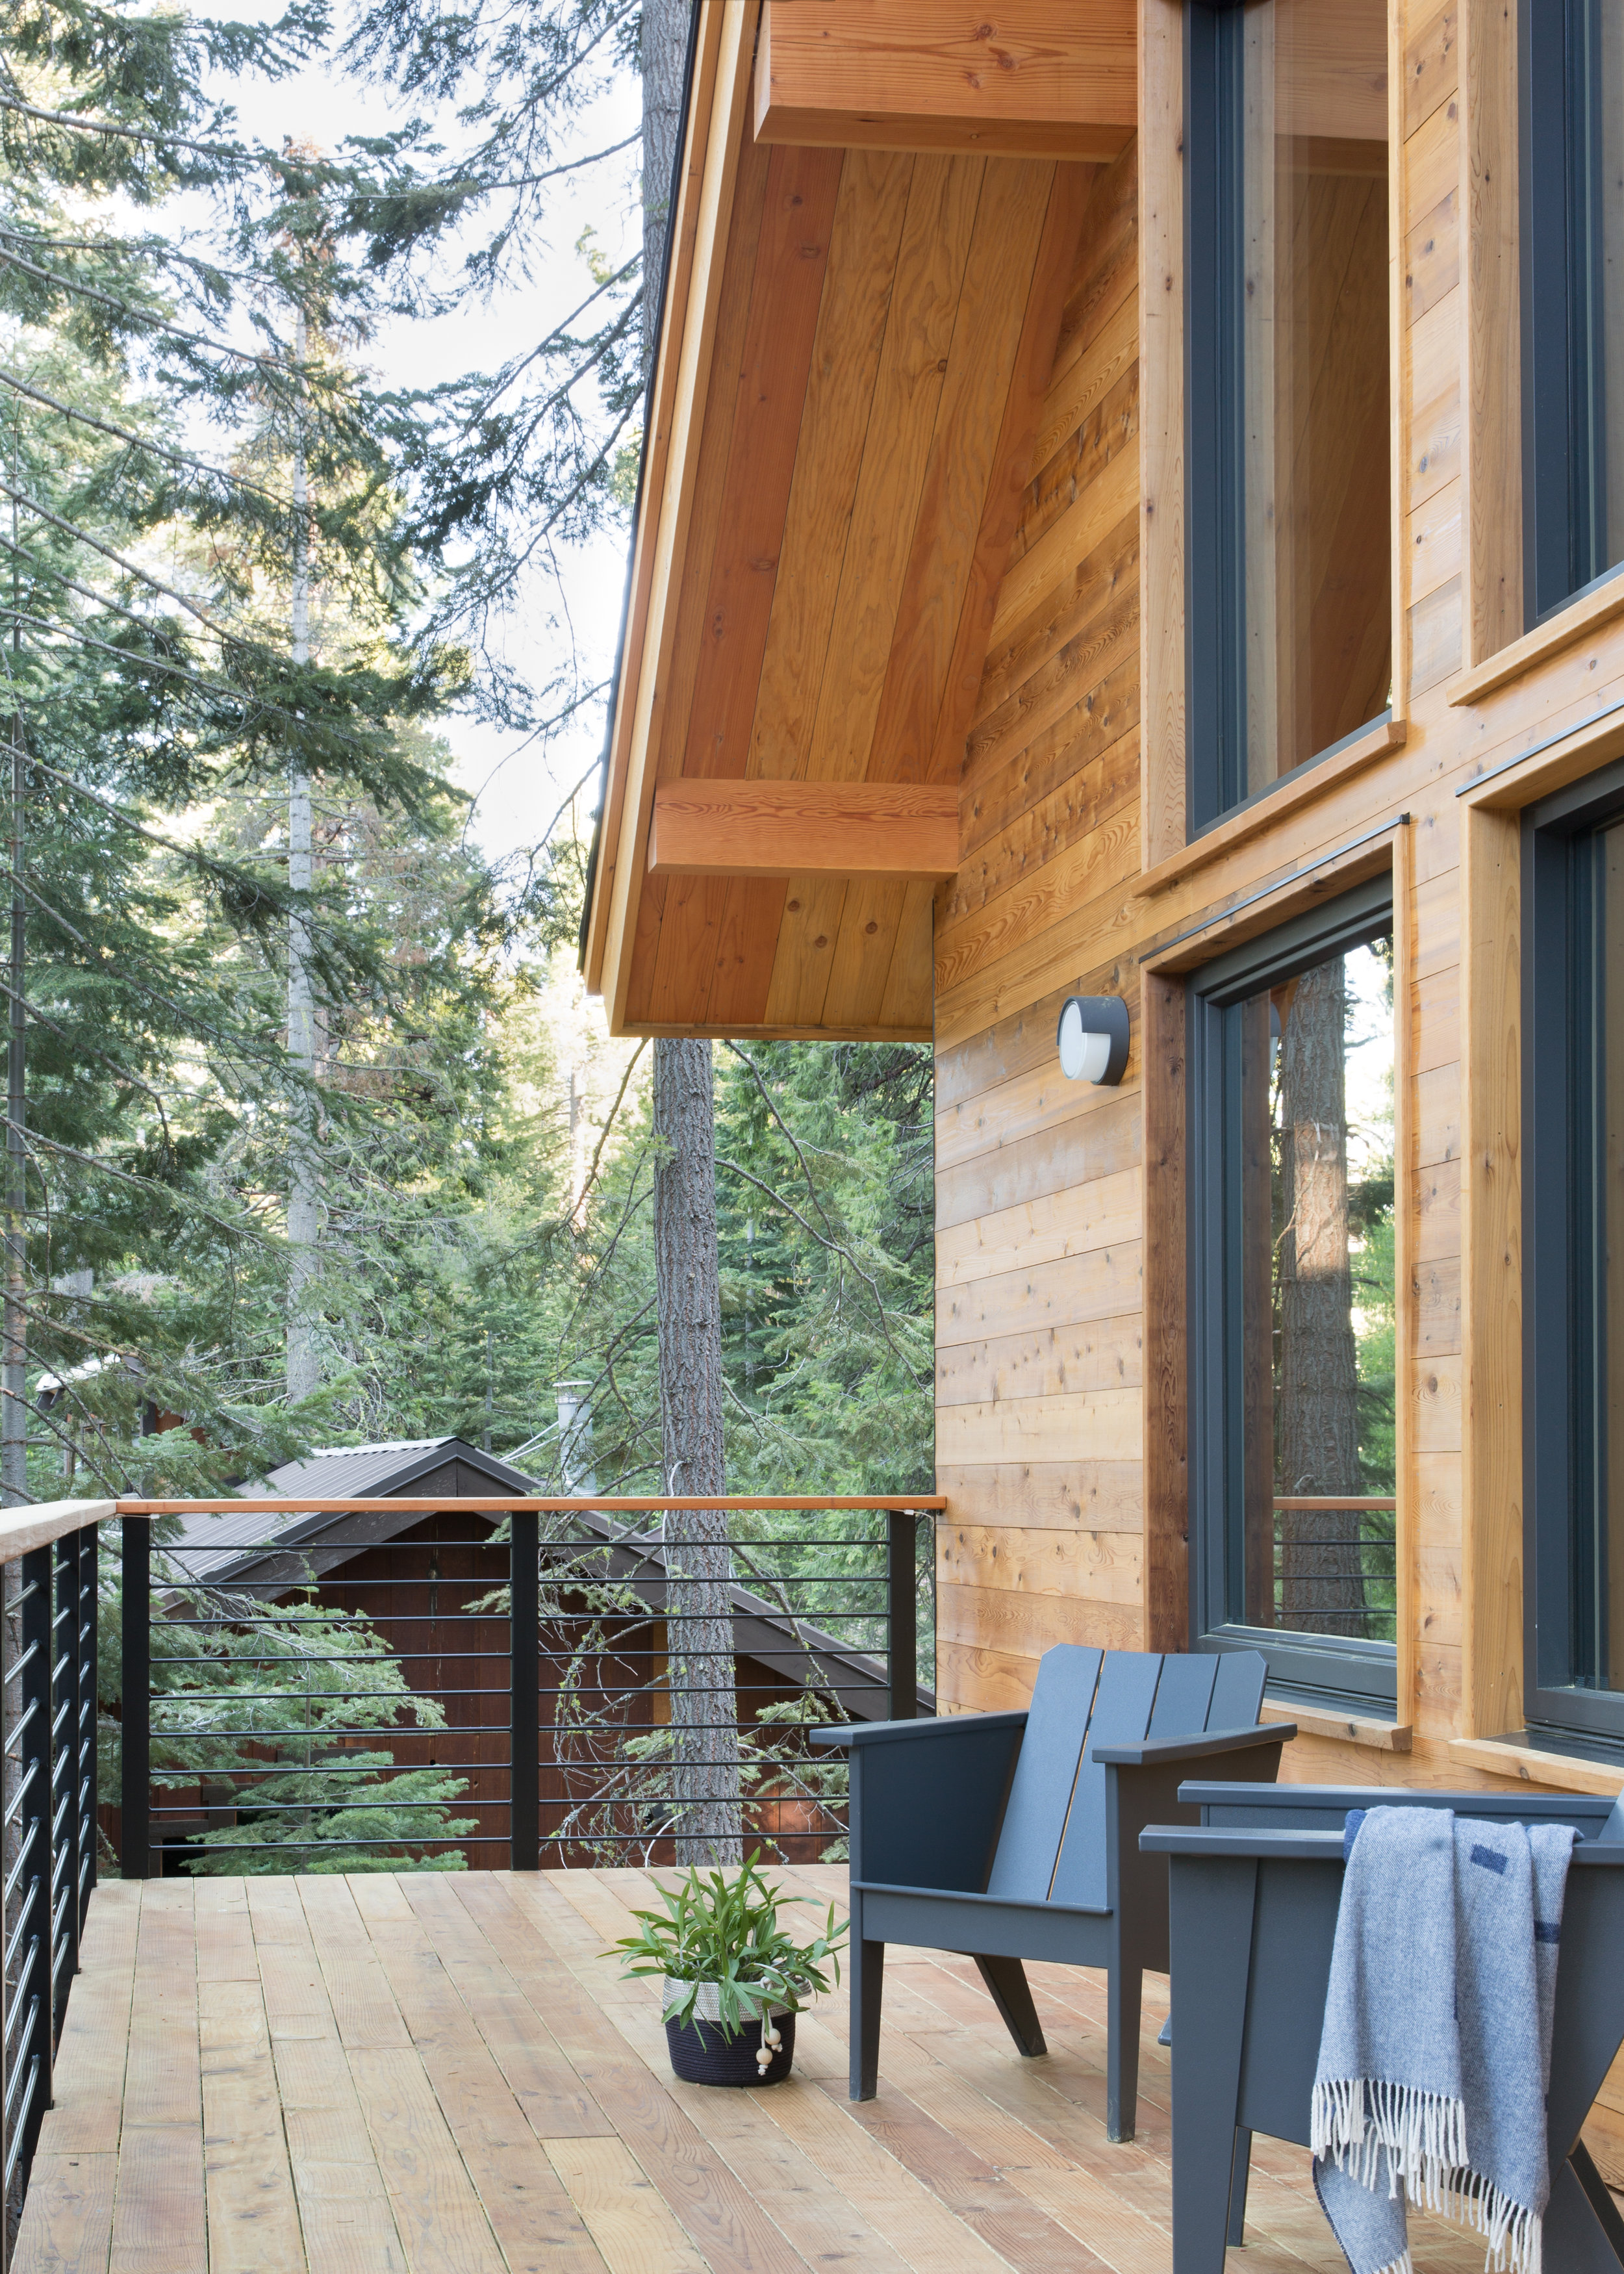 21_RBD_WOODSY TAHOE CABIN - EXTERIOR FRONT PORCH.jpg